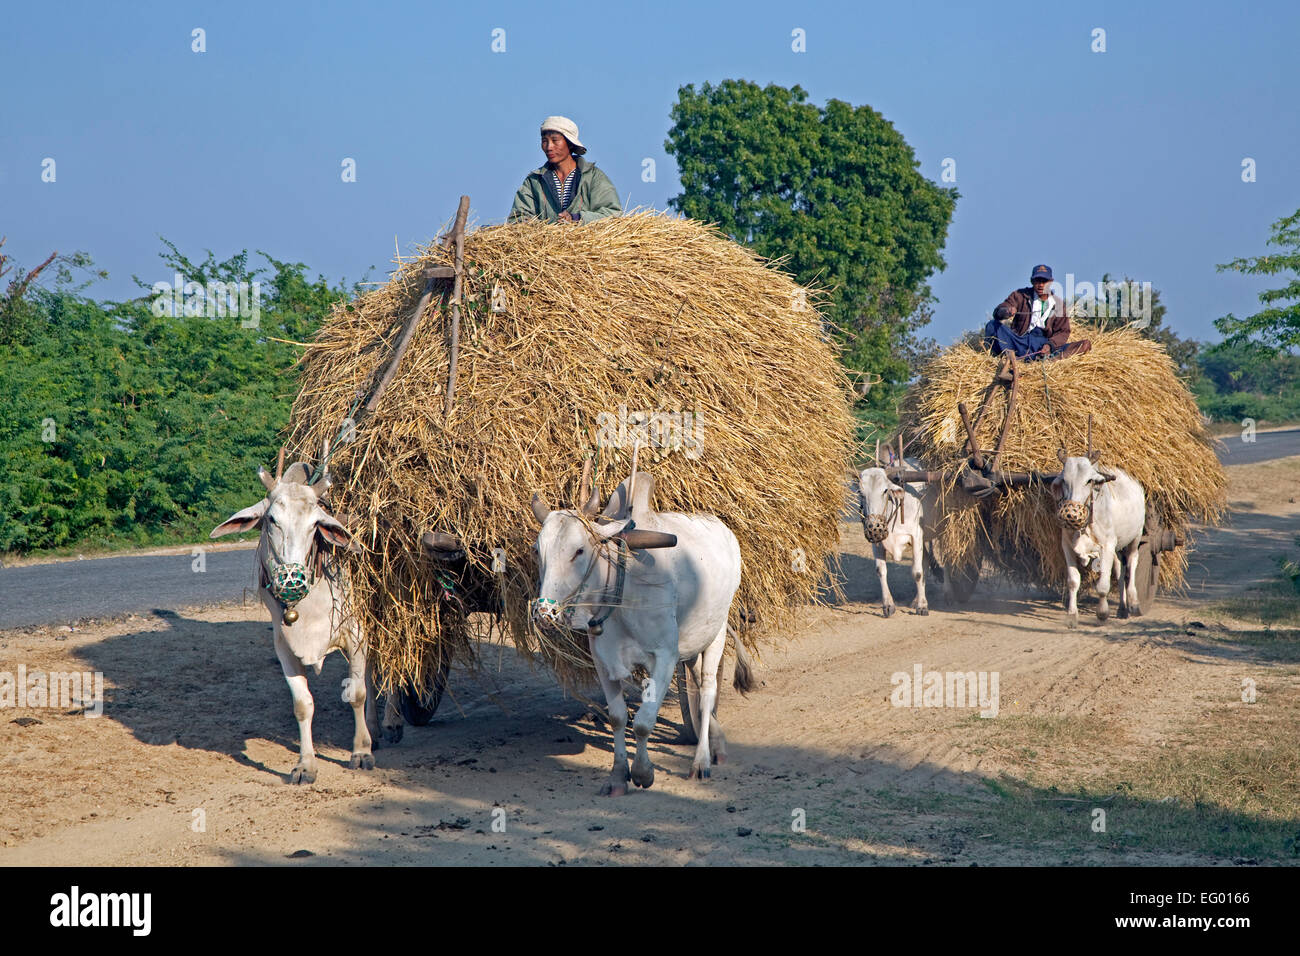 Wooden carts loaded with hay pulled by zebus / Brahman oxen (Bos taurus indicus) in Myanmar / Burma - Stock Image